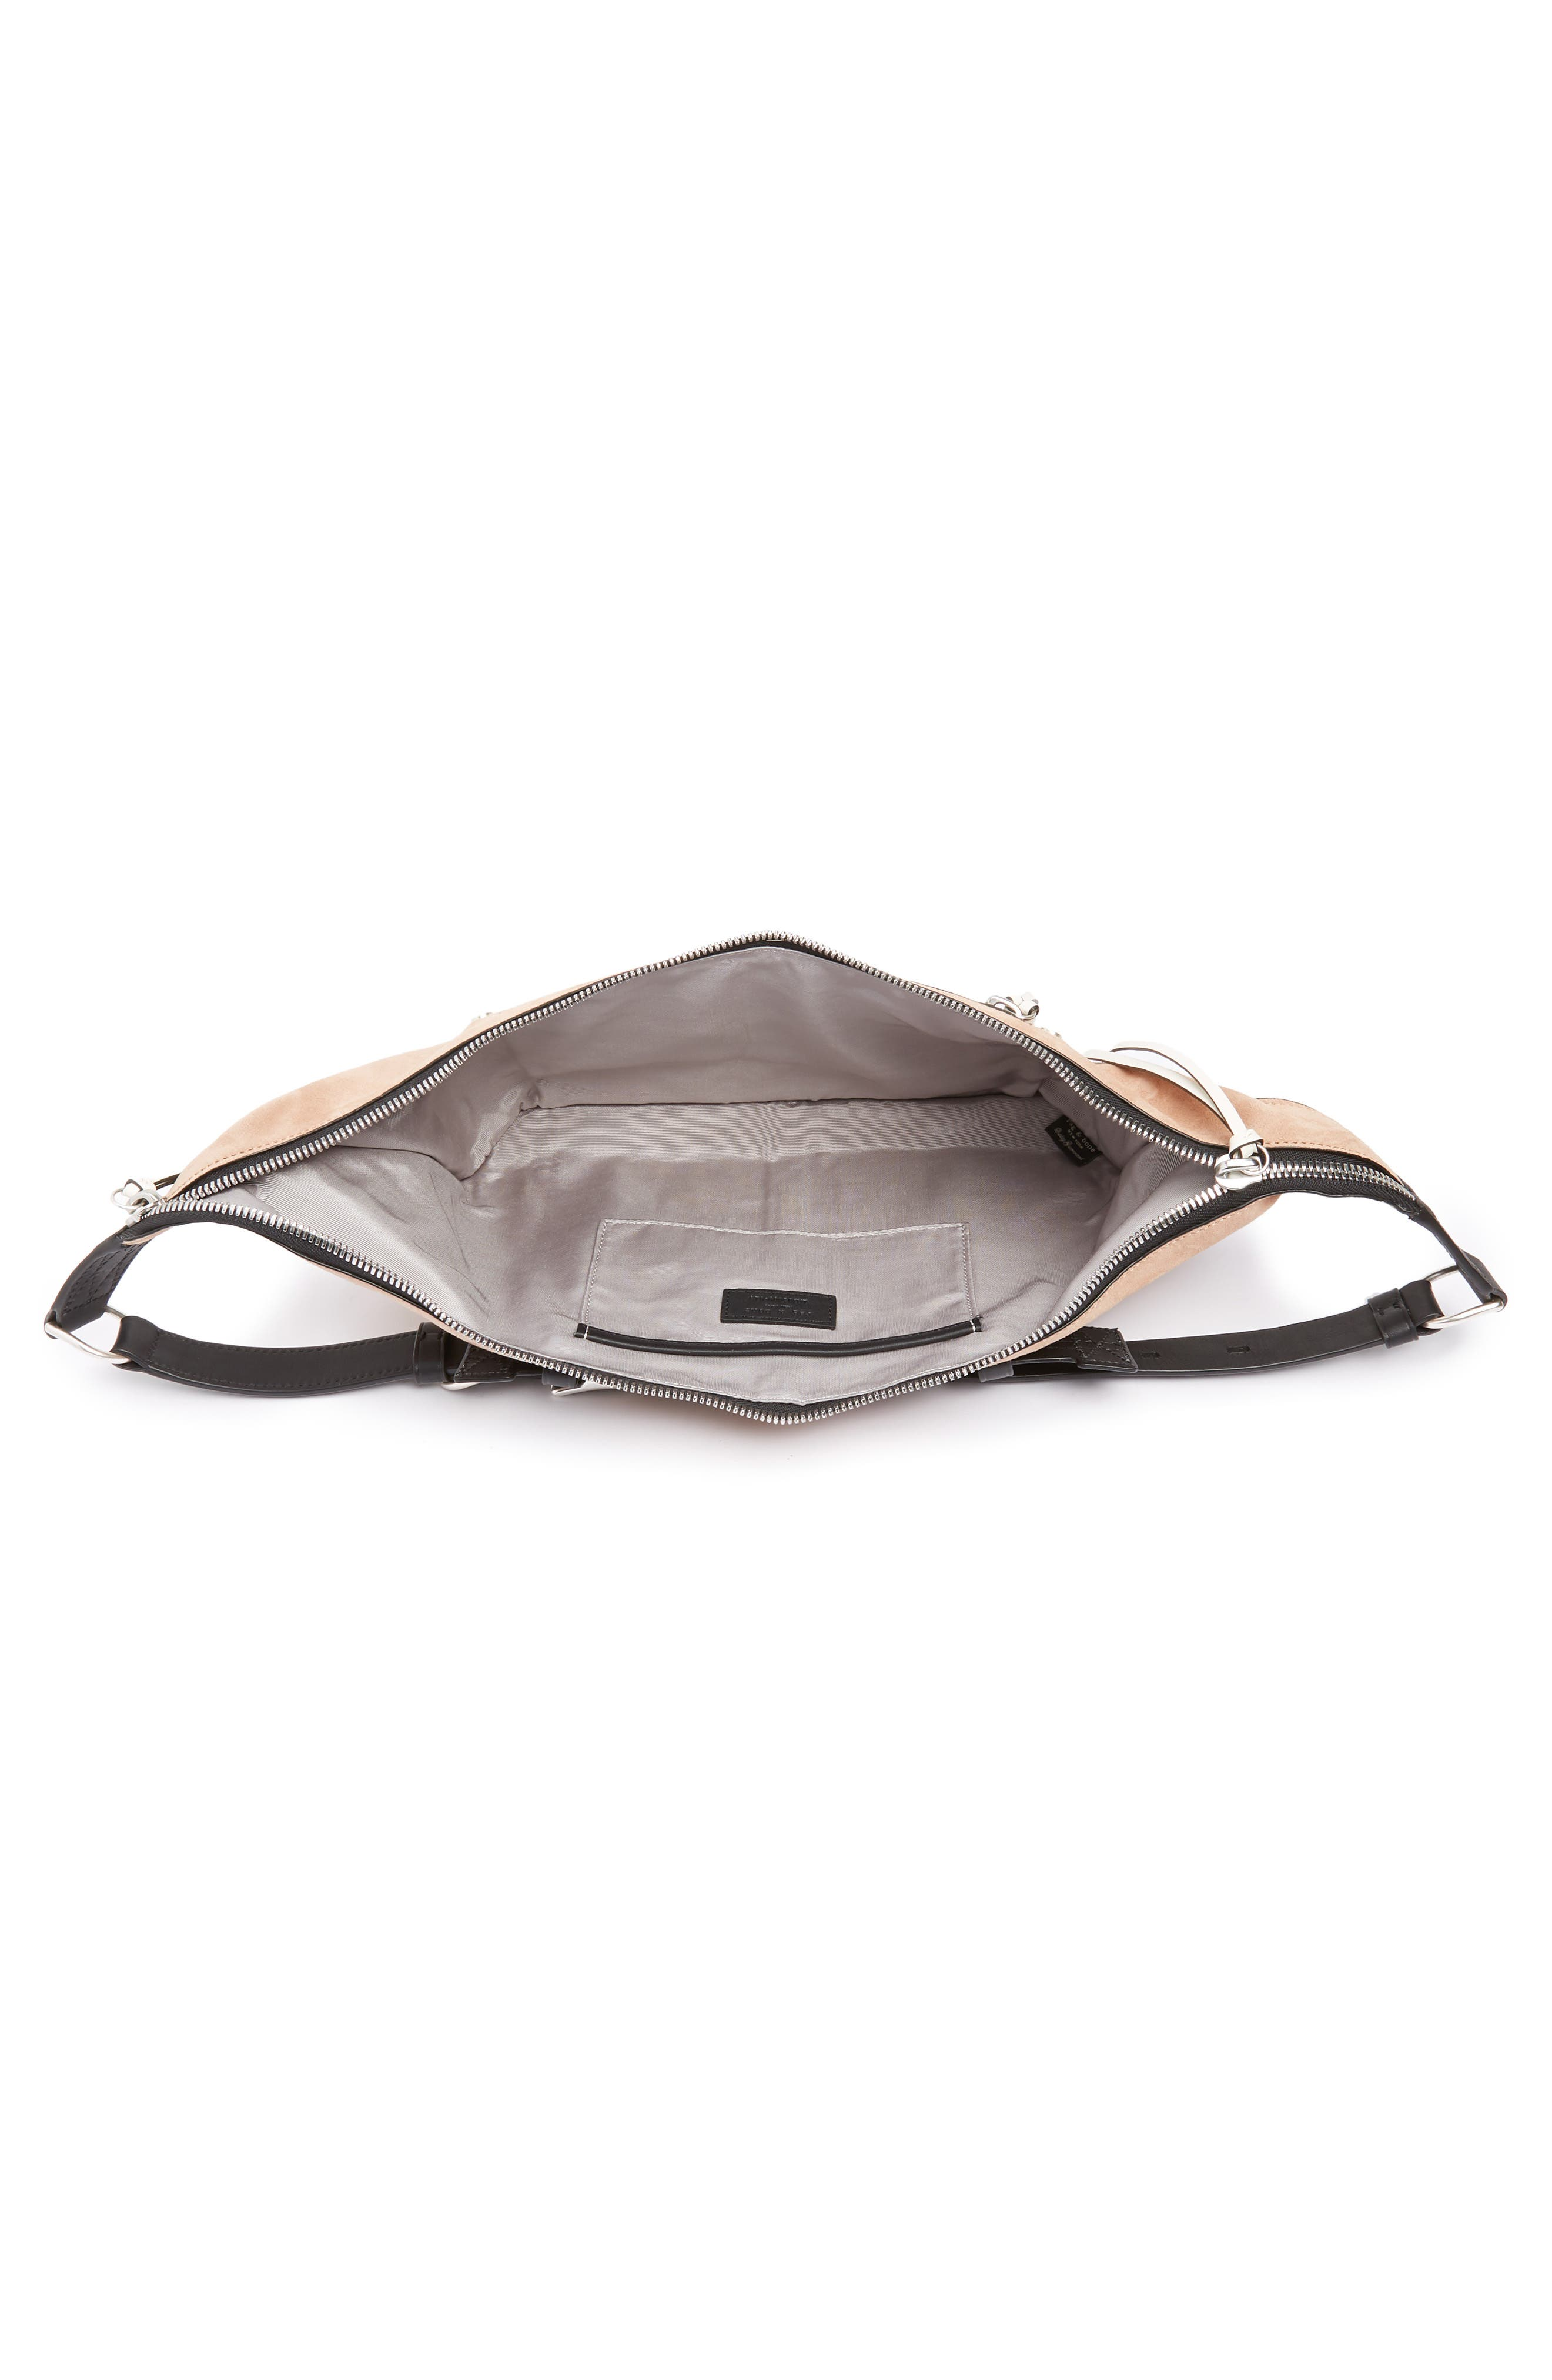 Elliot Leather Fanny Pack,                             Alternate thumbnail 5, color,                             NUDE SUEDE